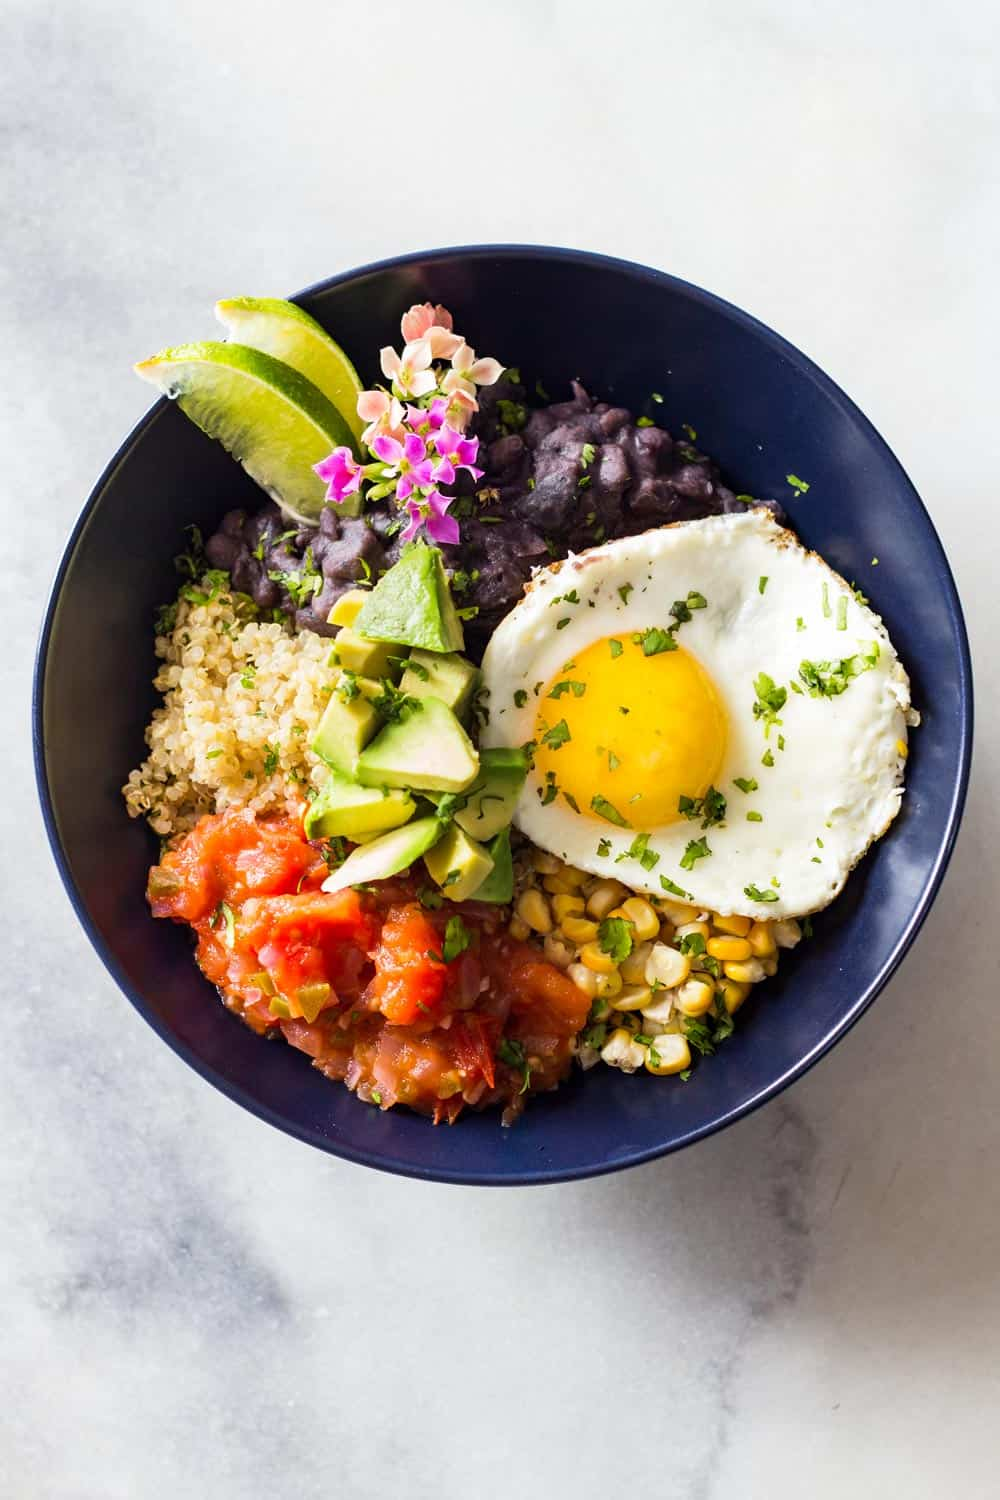 If you ever wondered how to make quinoa for breakfast, here I have the most amazing Quinoa Breakfast Bowl recipe ever! Start the day with full power!